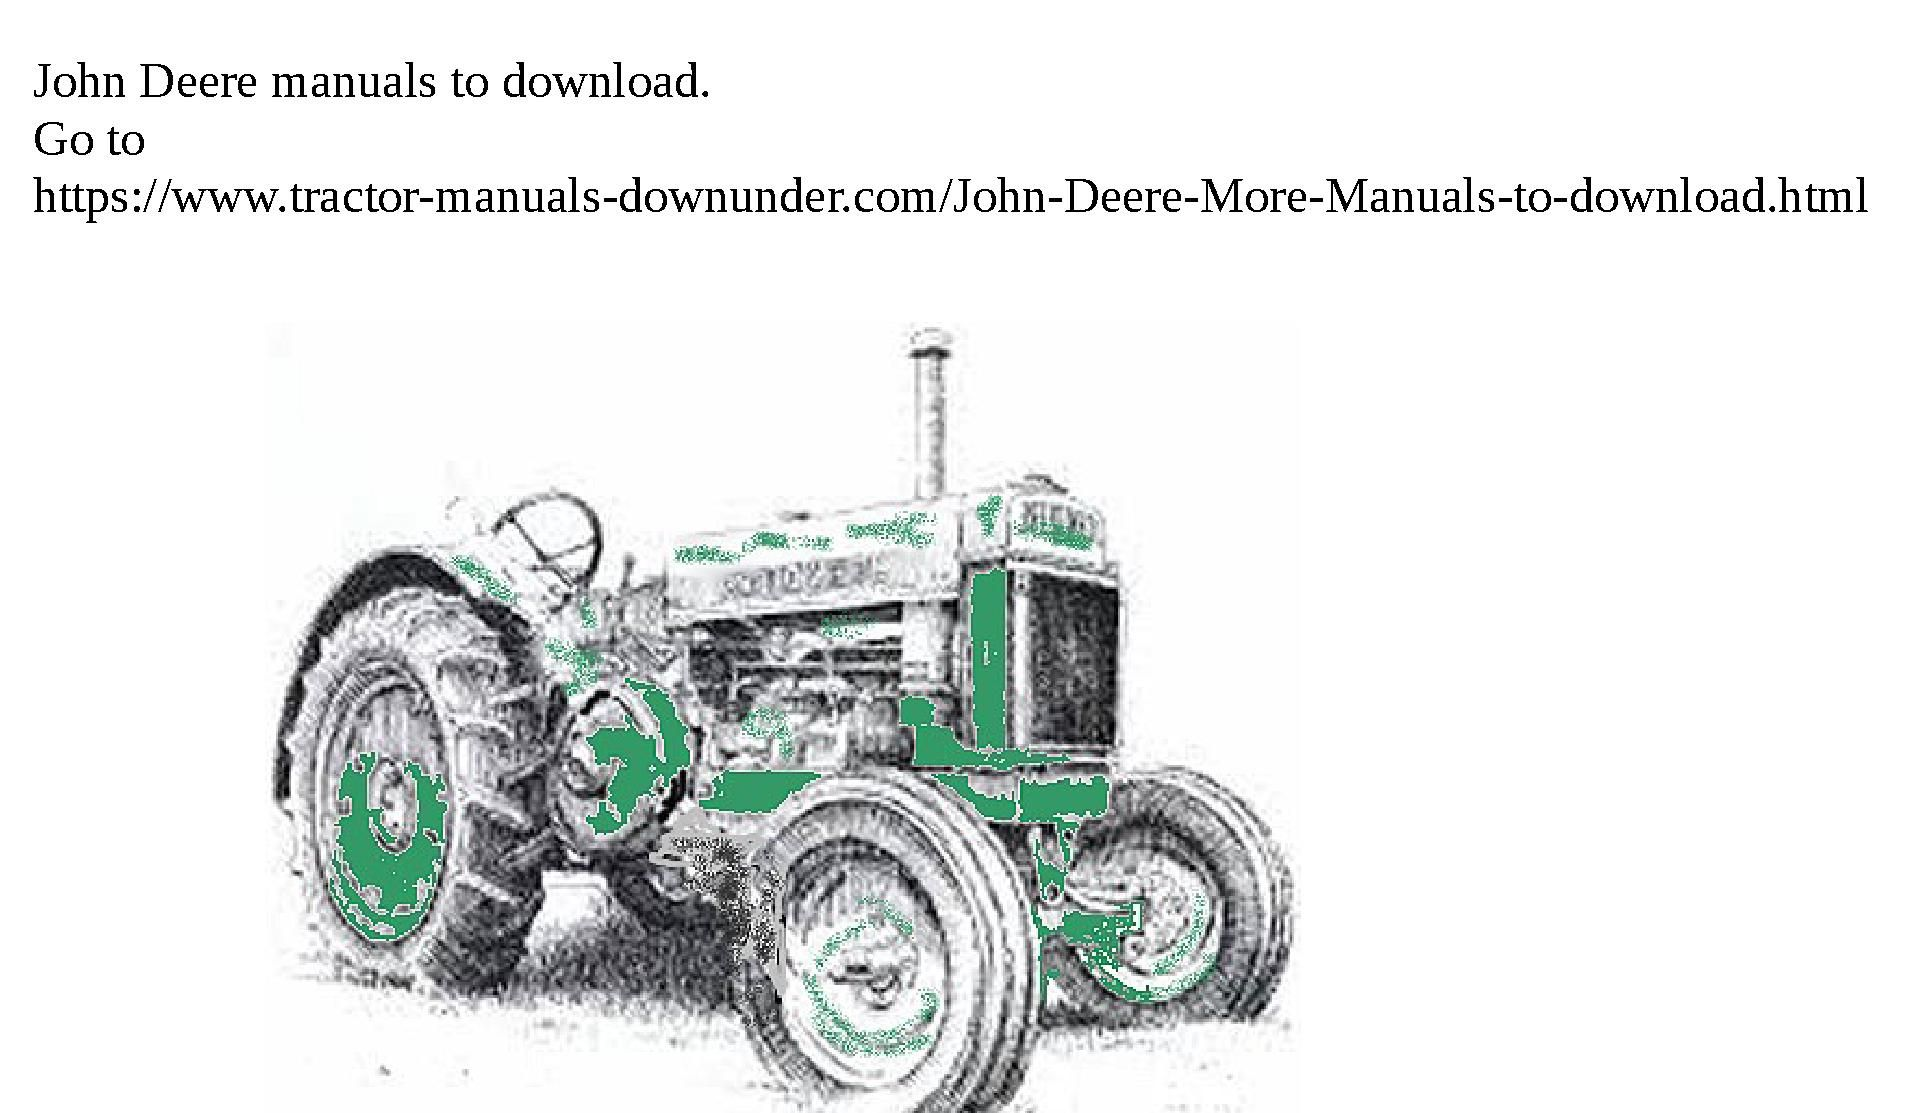 Pin on tractor manuals you can download